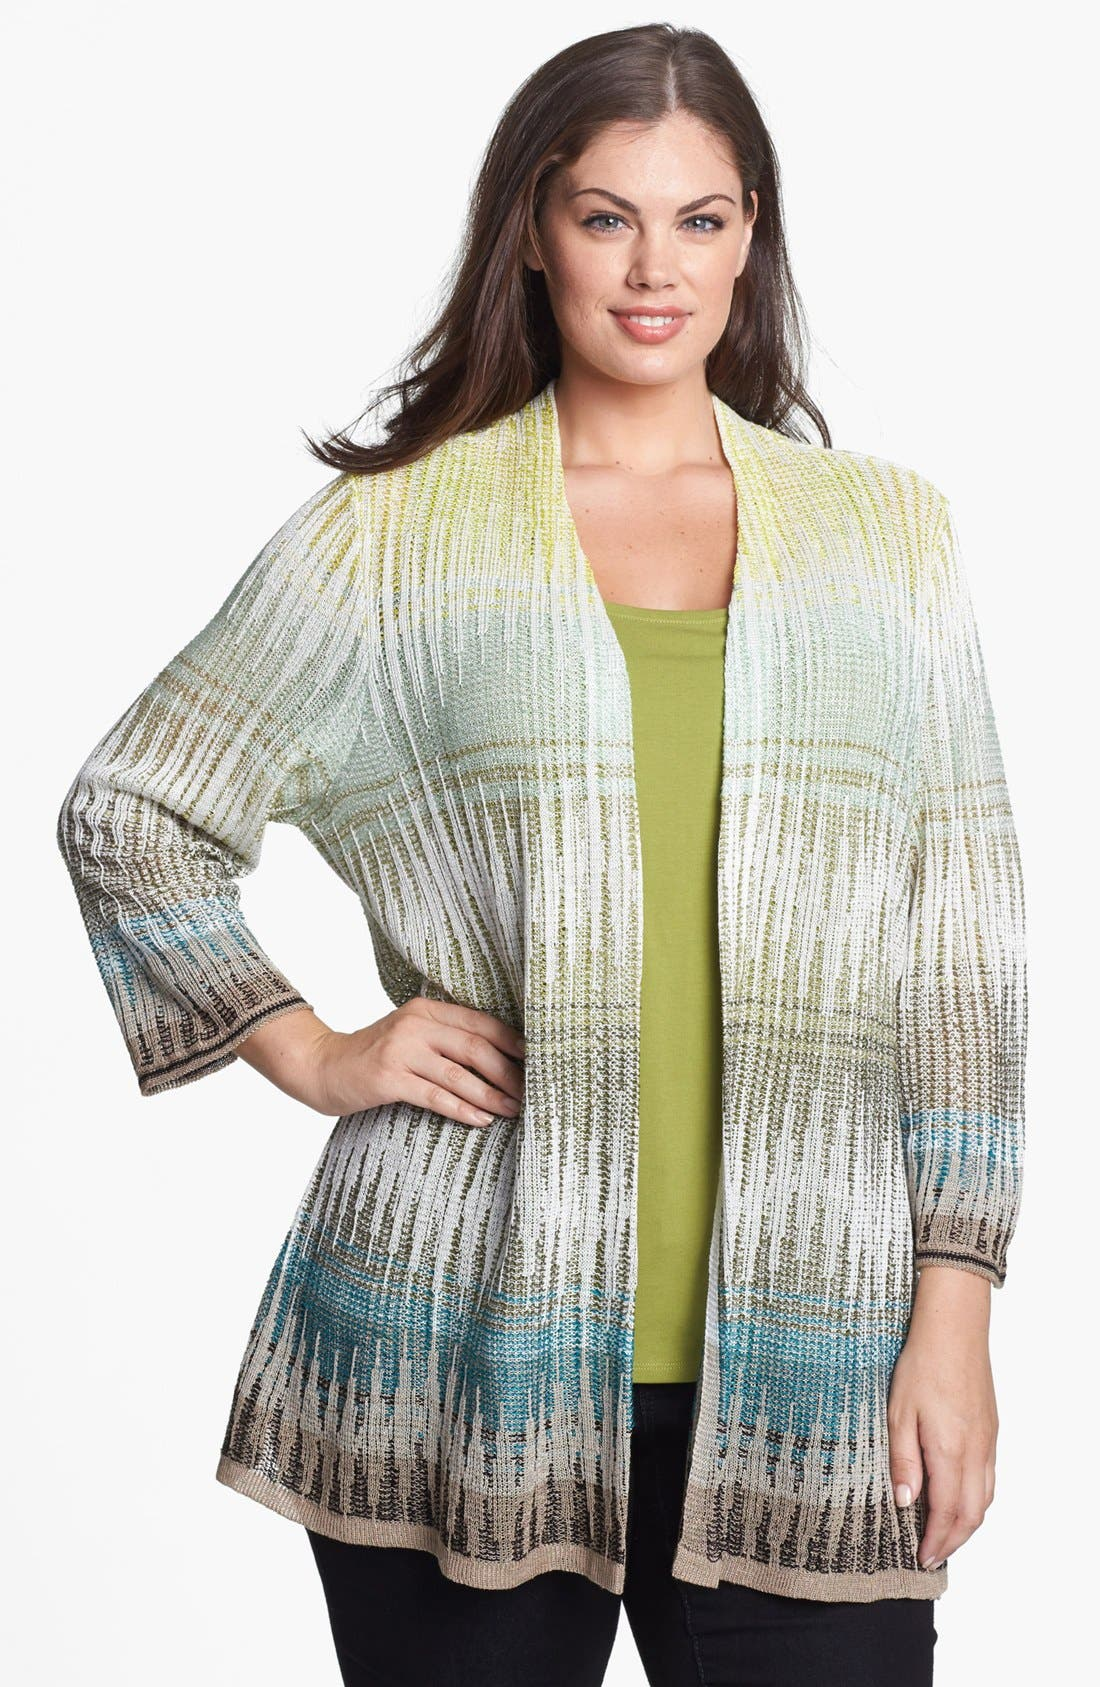 Alternate Image 1 Selected - NIC+ZOE 'Canopy' Cardigan (Plus Size)